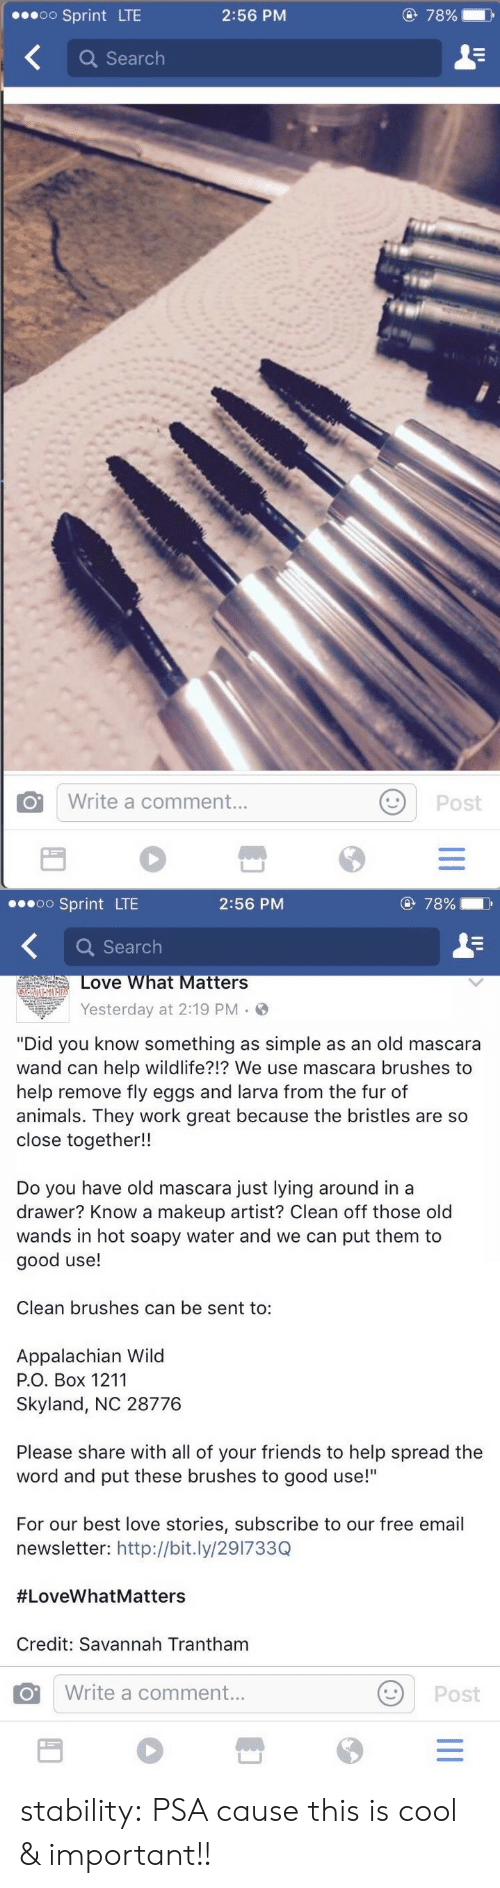 """psa: oo Sprint LTE  2:56 PM  78%  に  Q Search  O Write a comment..  Post   o Sprint LTE  2:56 PM  78%  Q Search  ove What Matters  Yesterday at 2:19 PM .  """"Did you know something as simple as an old mascara  wand can help wildlife?!? We use mascara brushes to  help remove fly eggs and larva from the fur of  animals. They work great because the bristles are so  close together!!  Do you have old mascara just lying around in a  drawer? Know a makeup artist? Clean off those old  wands in hot soapy water and we can put them to  good use!  Clean brushes can be sent to:  Appalachian Wild  Р.О. Box 1211  Skyland, NC 28776  Please share with all of your friends to help spread the  word and put these brushes to good use!""""  For our best love stories, subscribe to our free email  newsletter: http://bit.ly/291733Q  #LoveWhatMatters  Credit: Savannah Trantham  Write a comment  Post stability: PSA cause this is cool & important!!"""